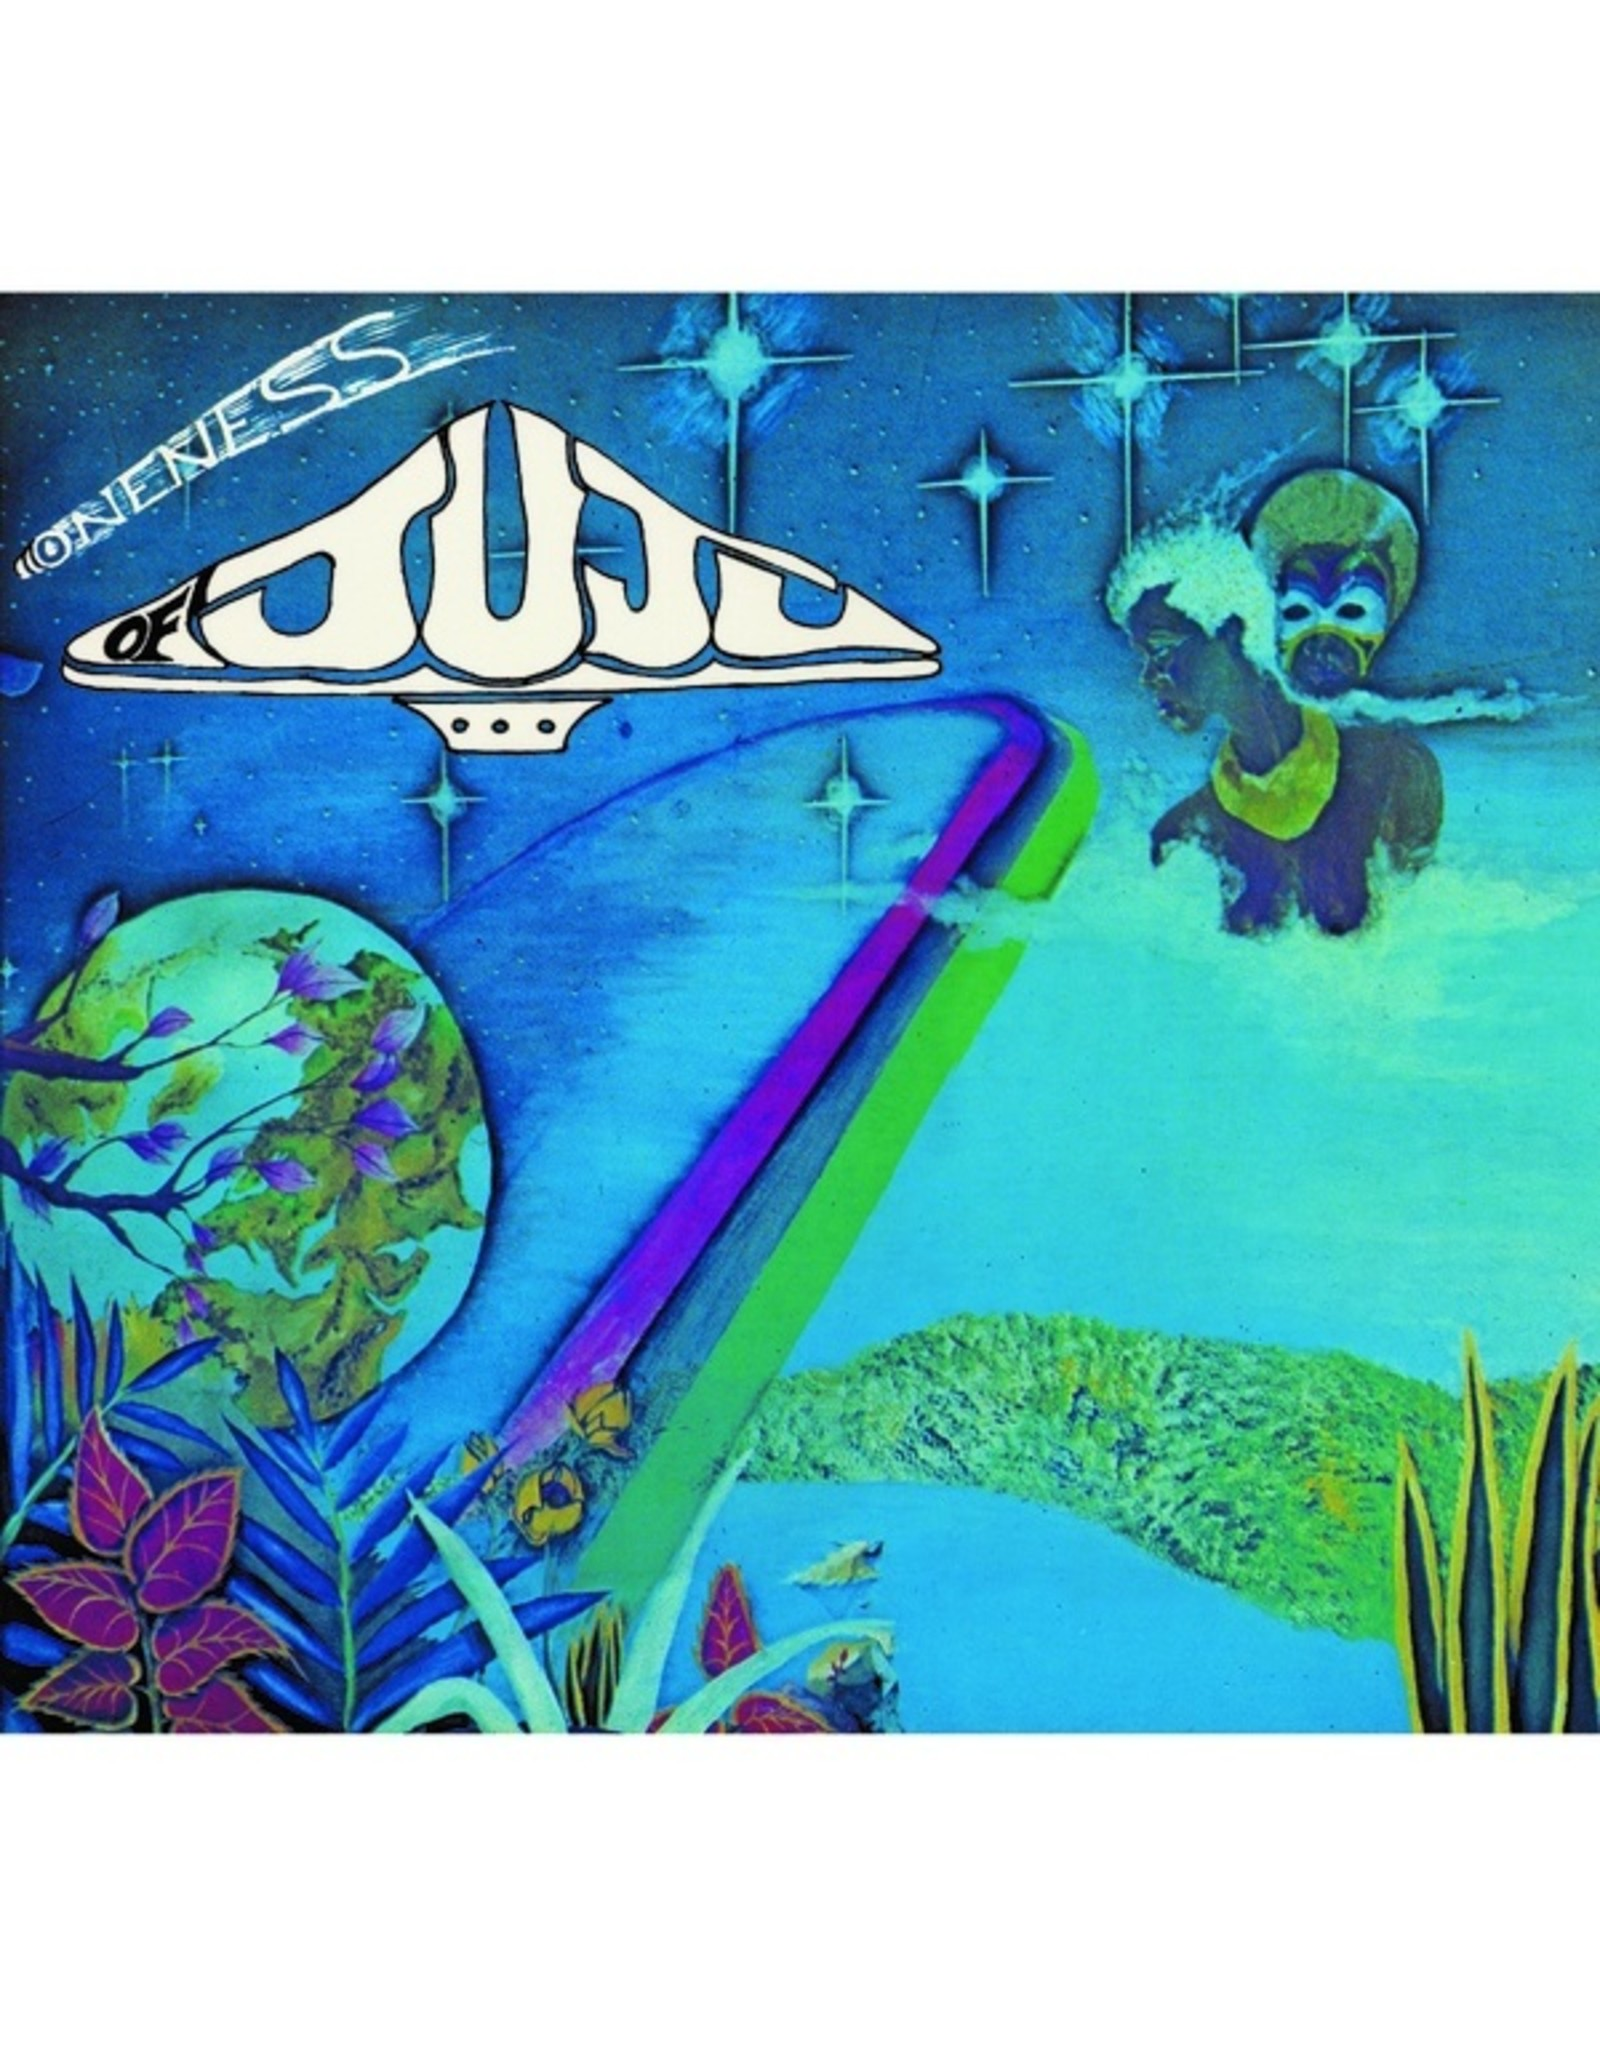 New Vinyl Oneness Of Juju - Space Jungle Luv LP